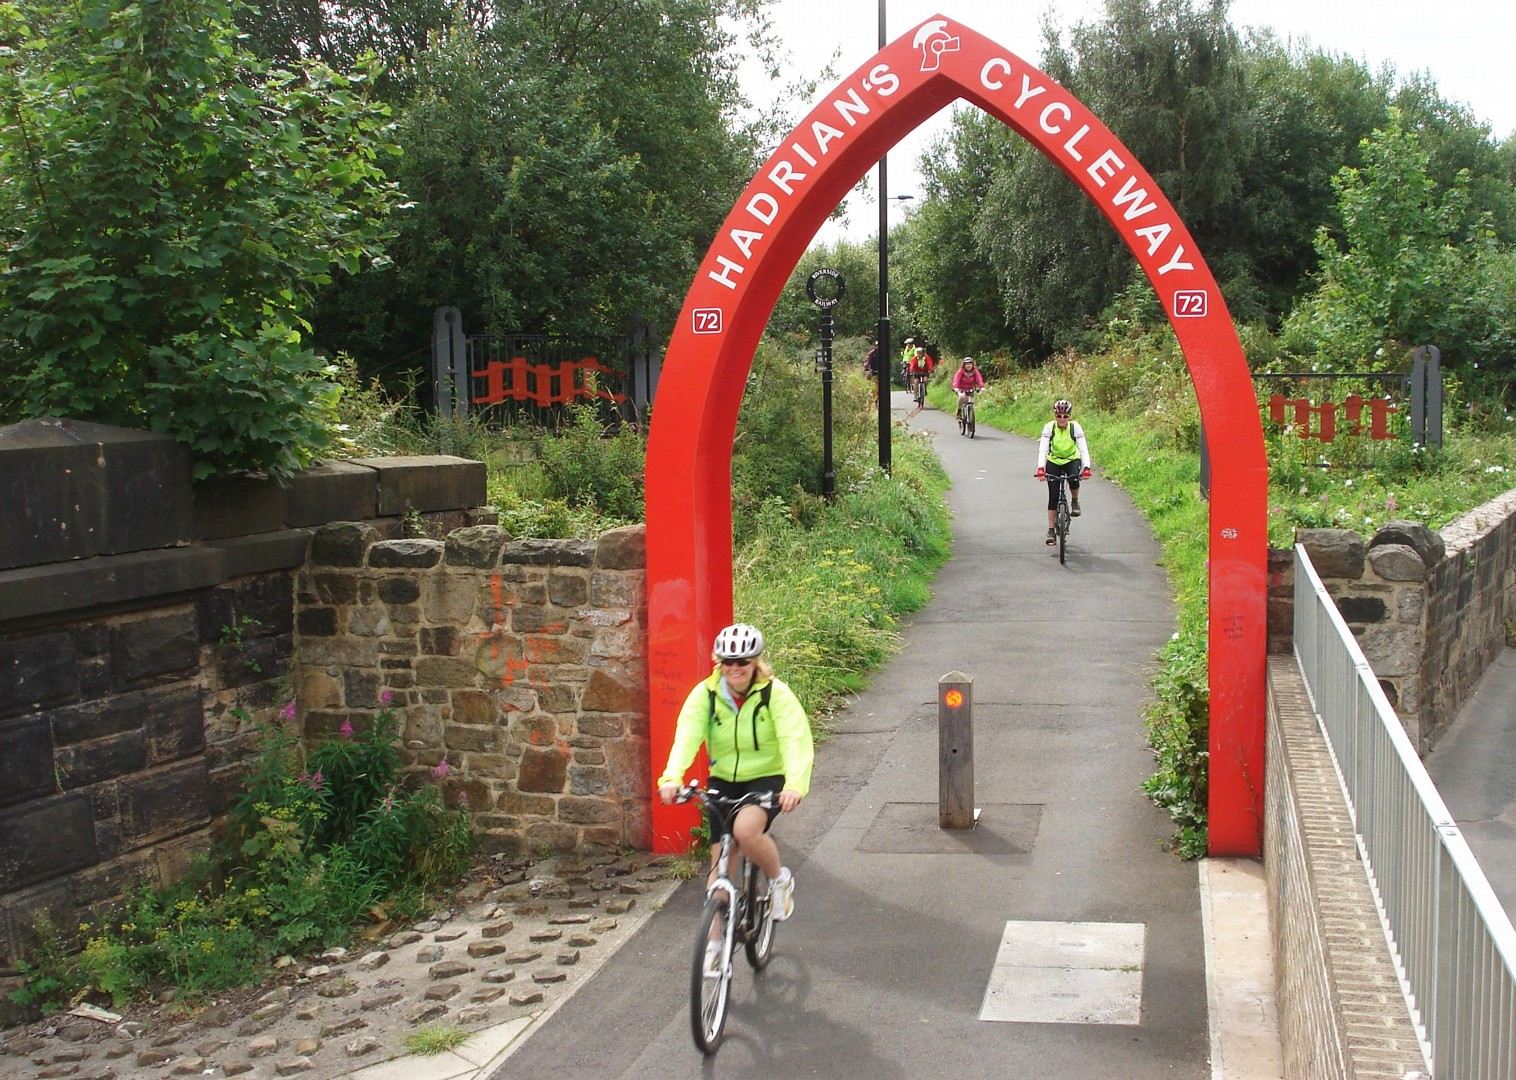 hadrians-cycleway-uk-supported-cycling-trip.jpg - UK - Hadrian's Cycleway 4 Day - Supported Family Cycling Holiday - Family Cycling